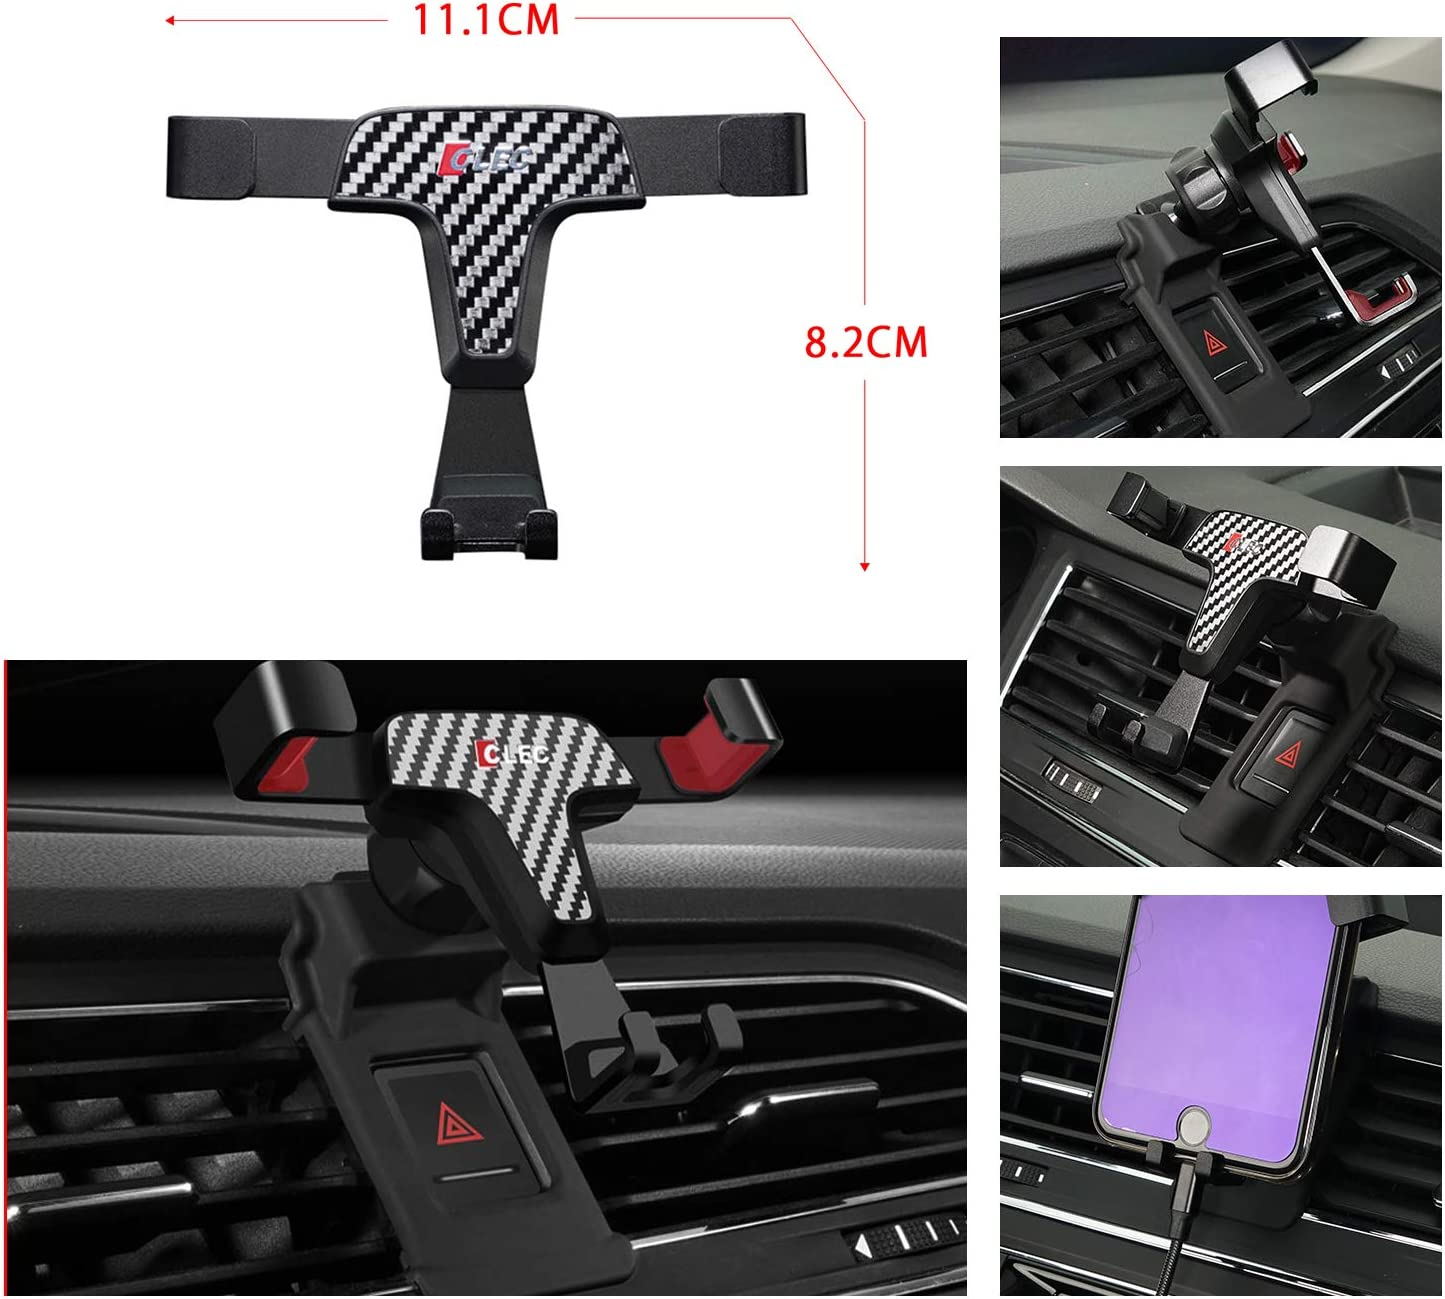 R RUIYA 2018 2019 Tiguan Smartphone Cell Phone Mount Holder with Adjustable Air Vent Clip Cover Fit for 3.5-6.0 Inches Phone